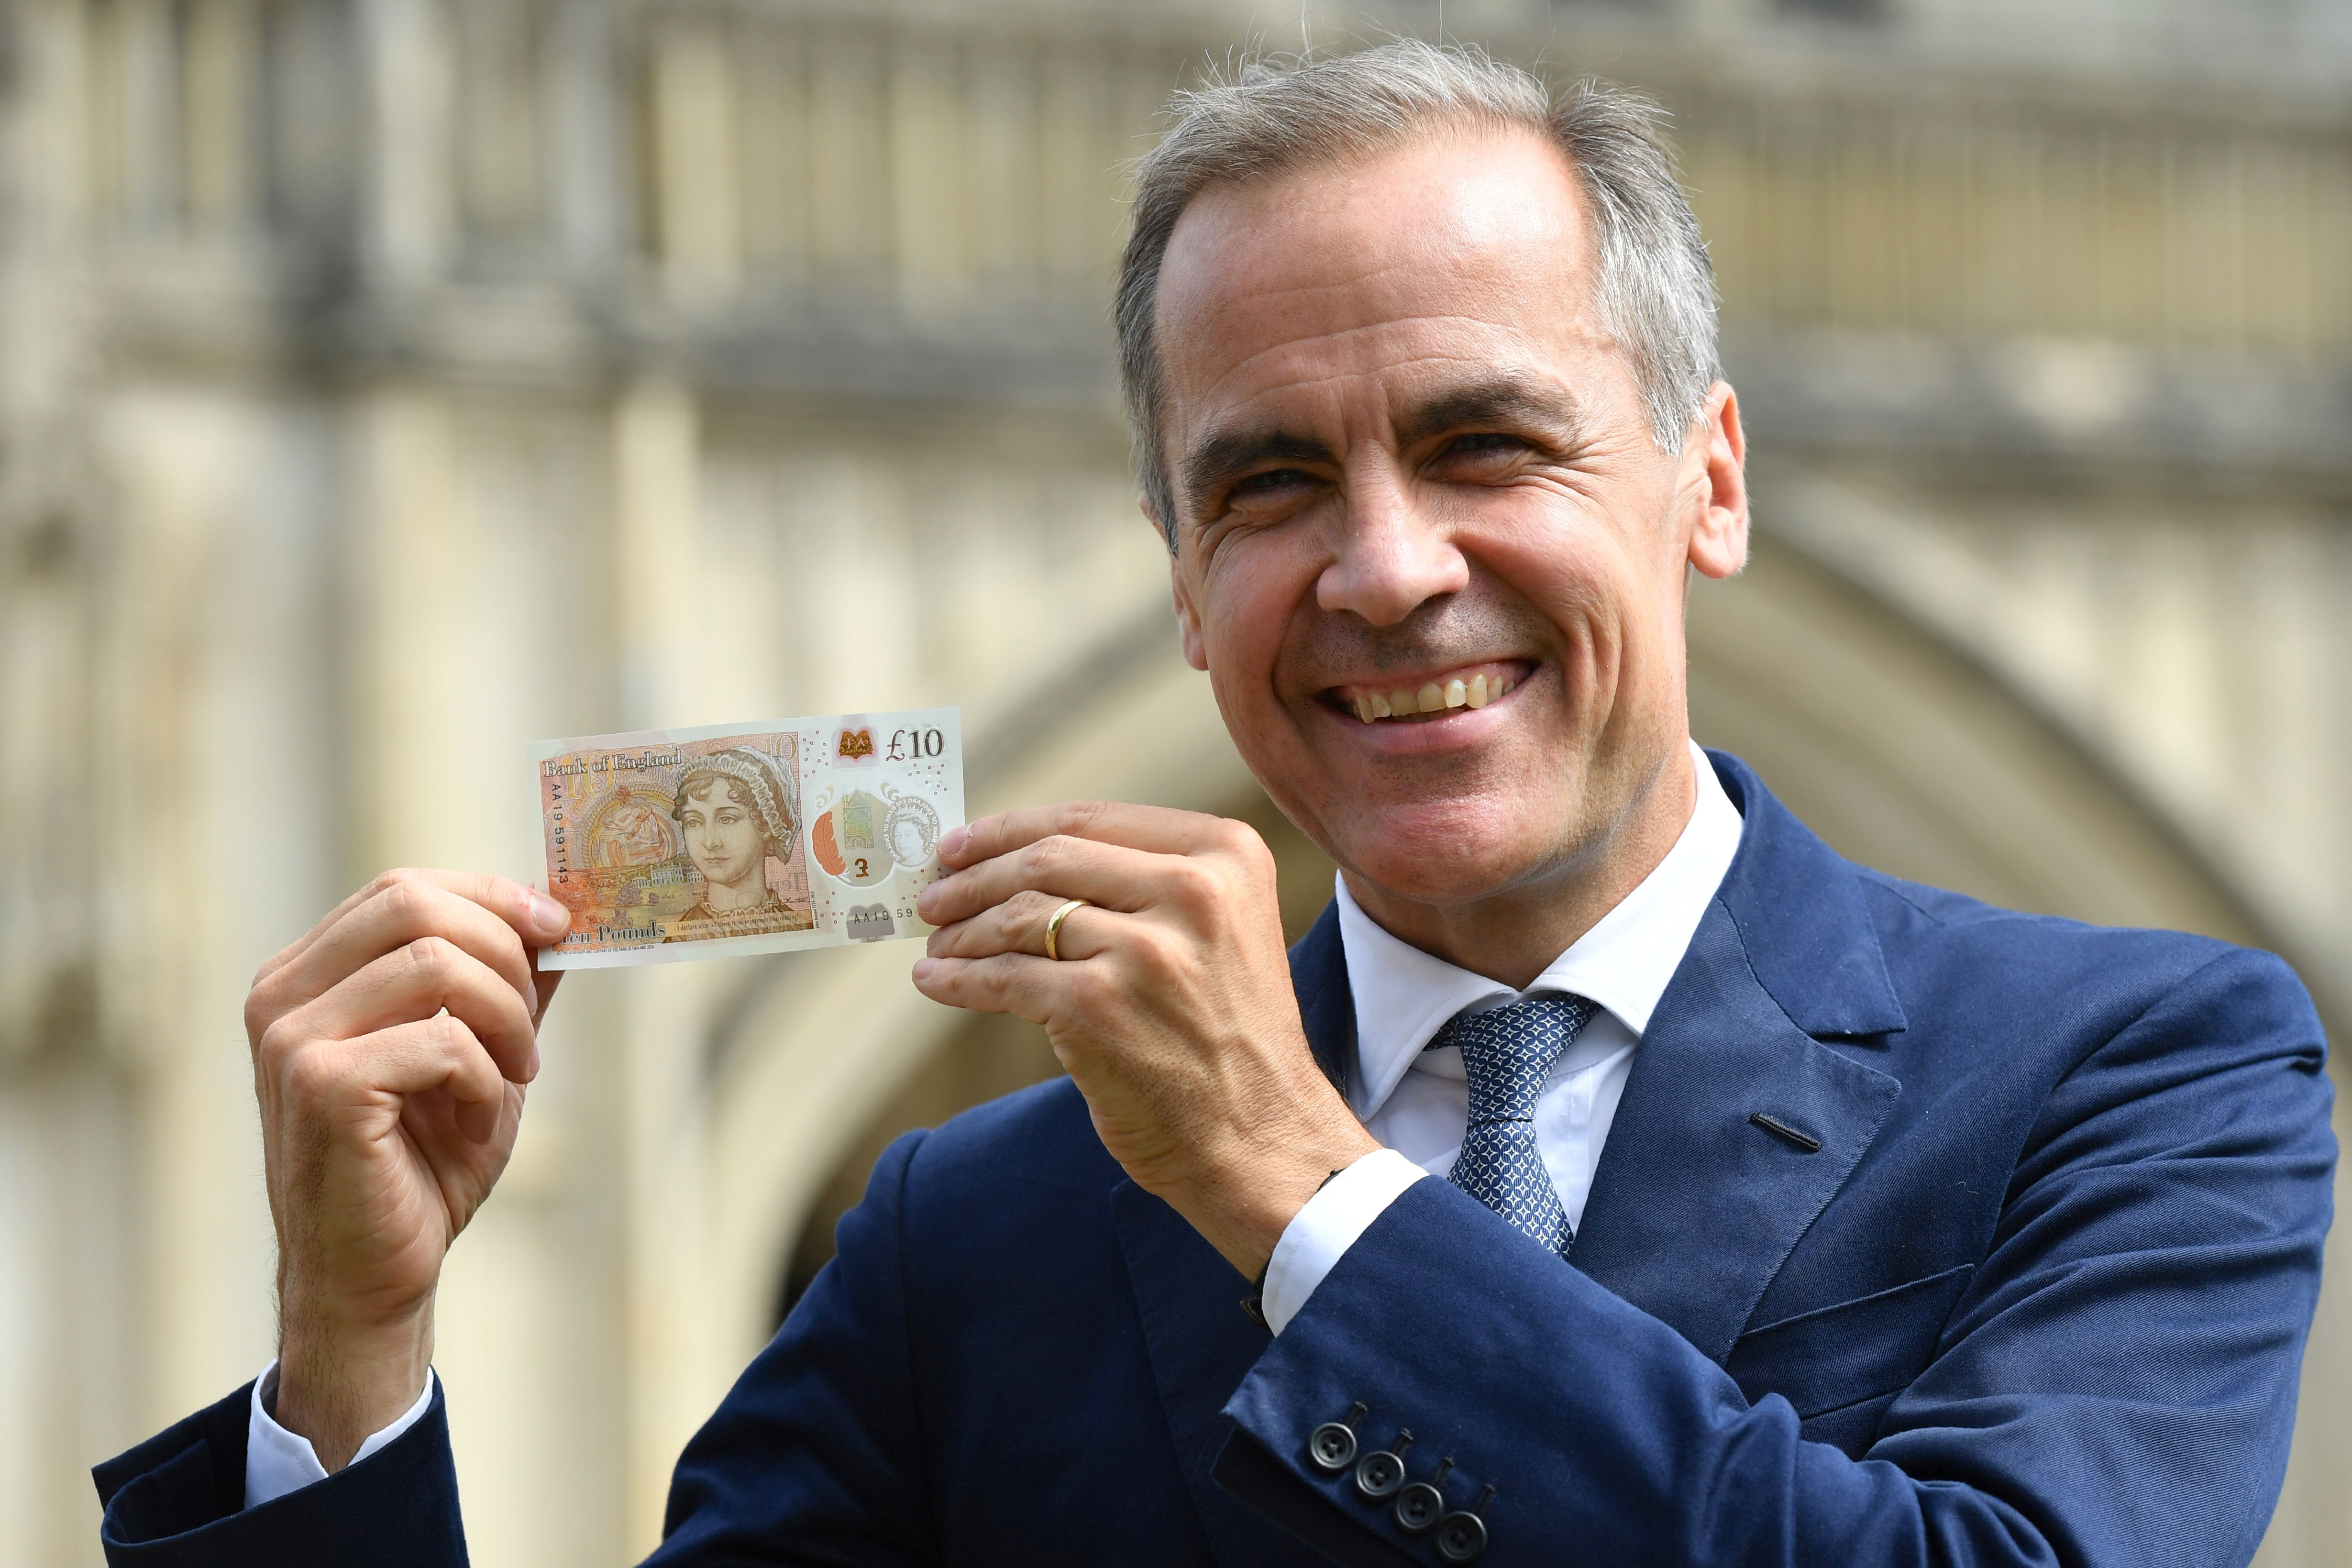 Britain's Bank of England Governor, Mark Carney, holds the new £10 note featuring Jane Austen, at Winchester Cathedral in England.